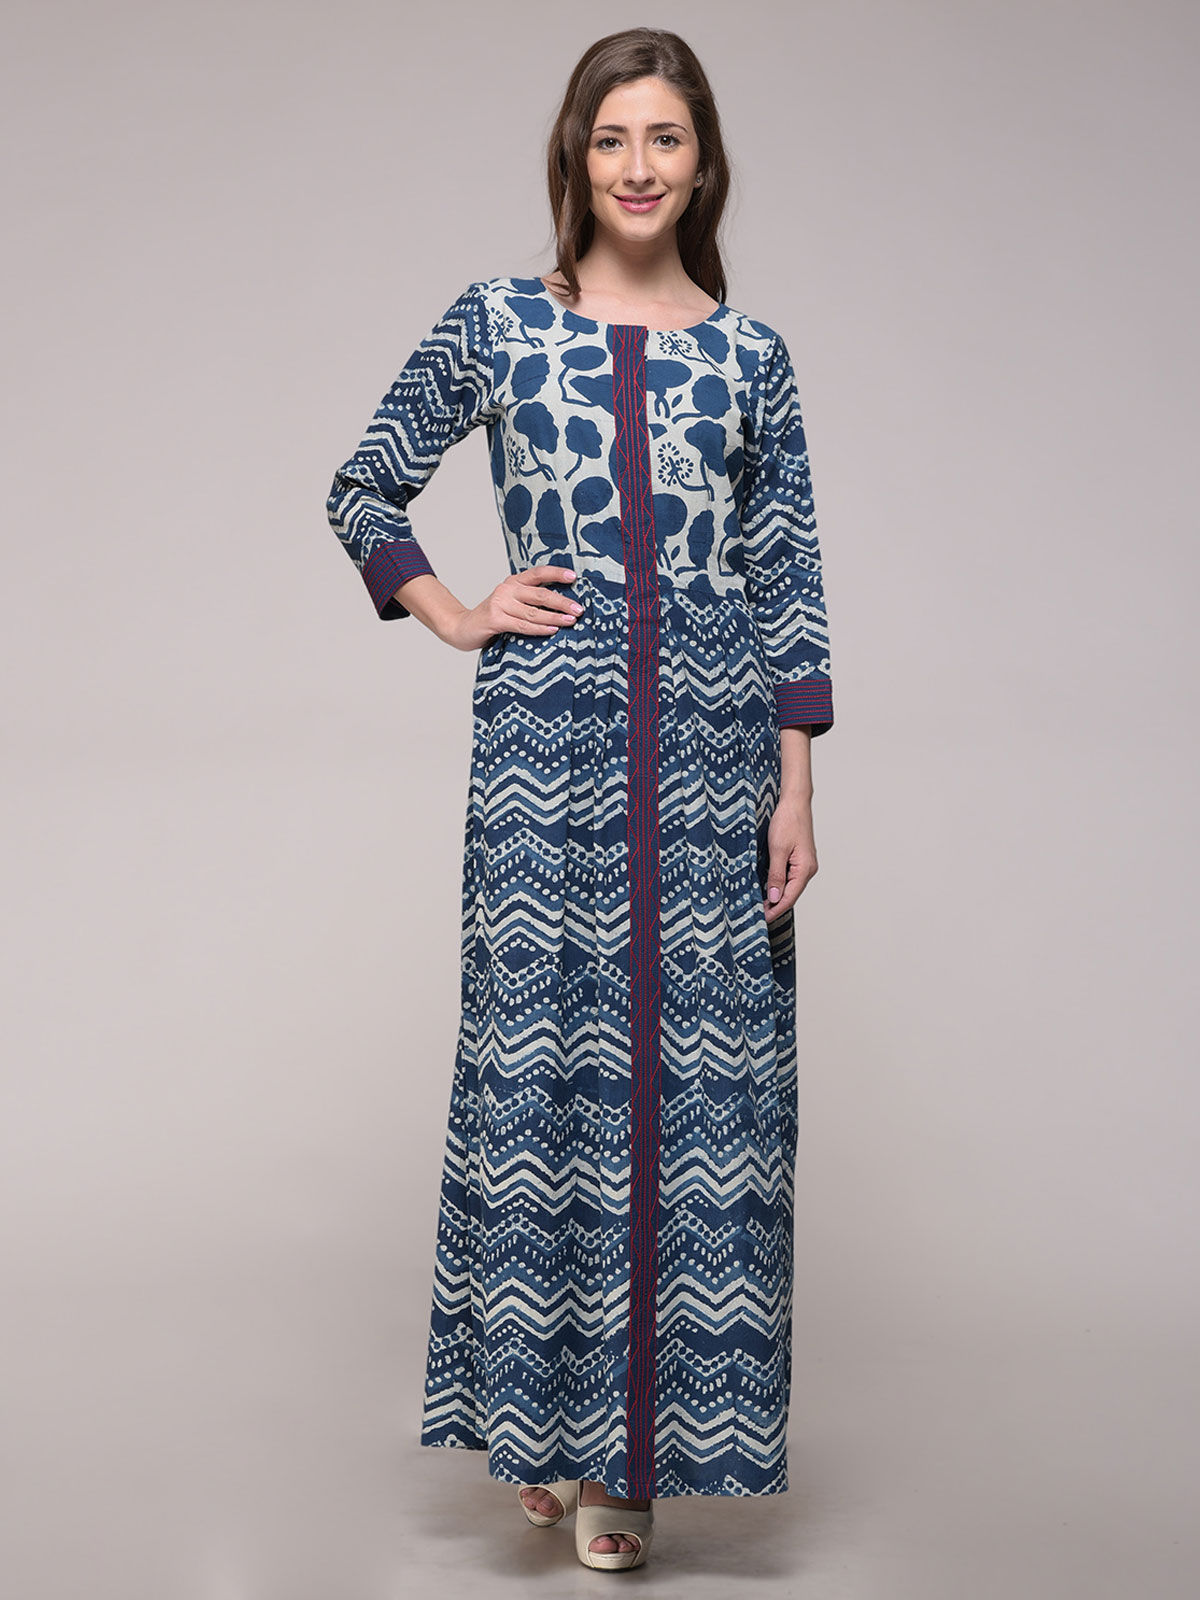 DABU INDIGO DYED EMBROIDERED FLORAL DRESS WITH PLACKET